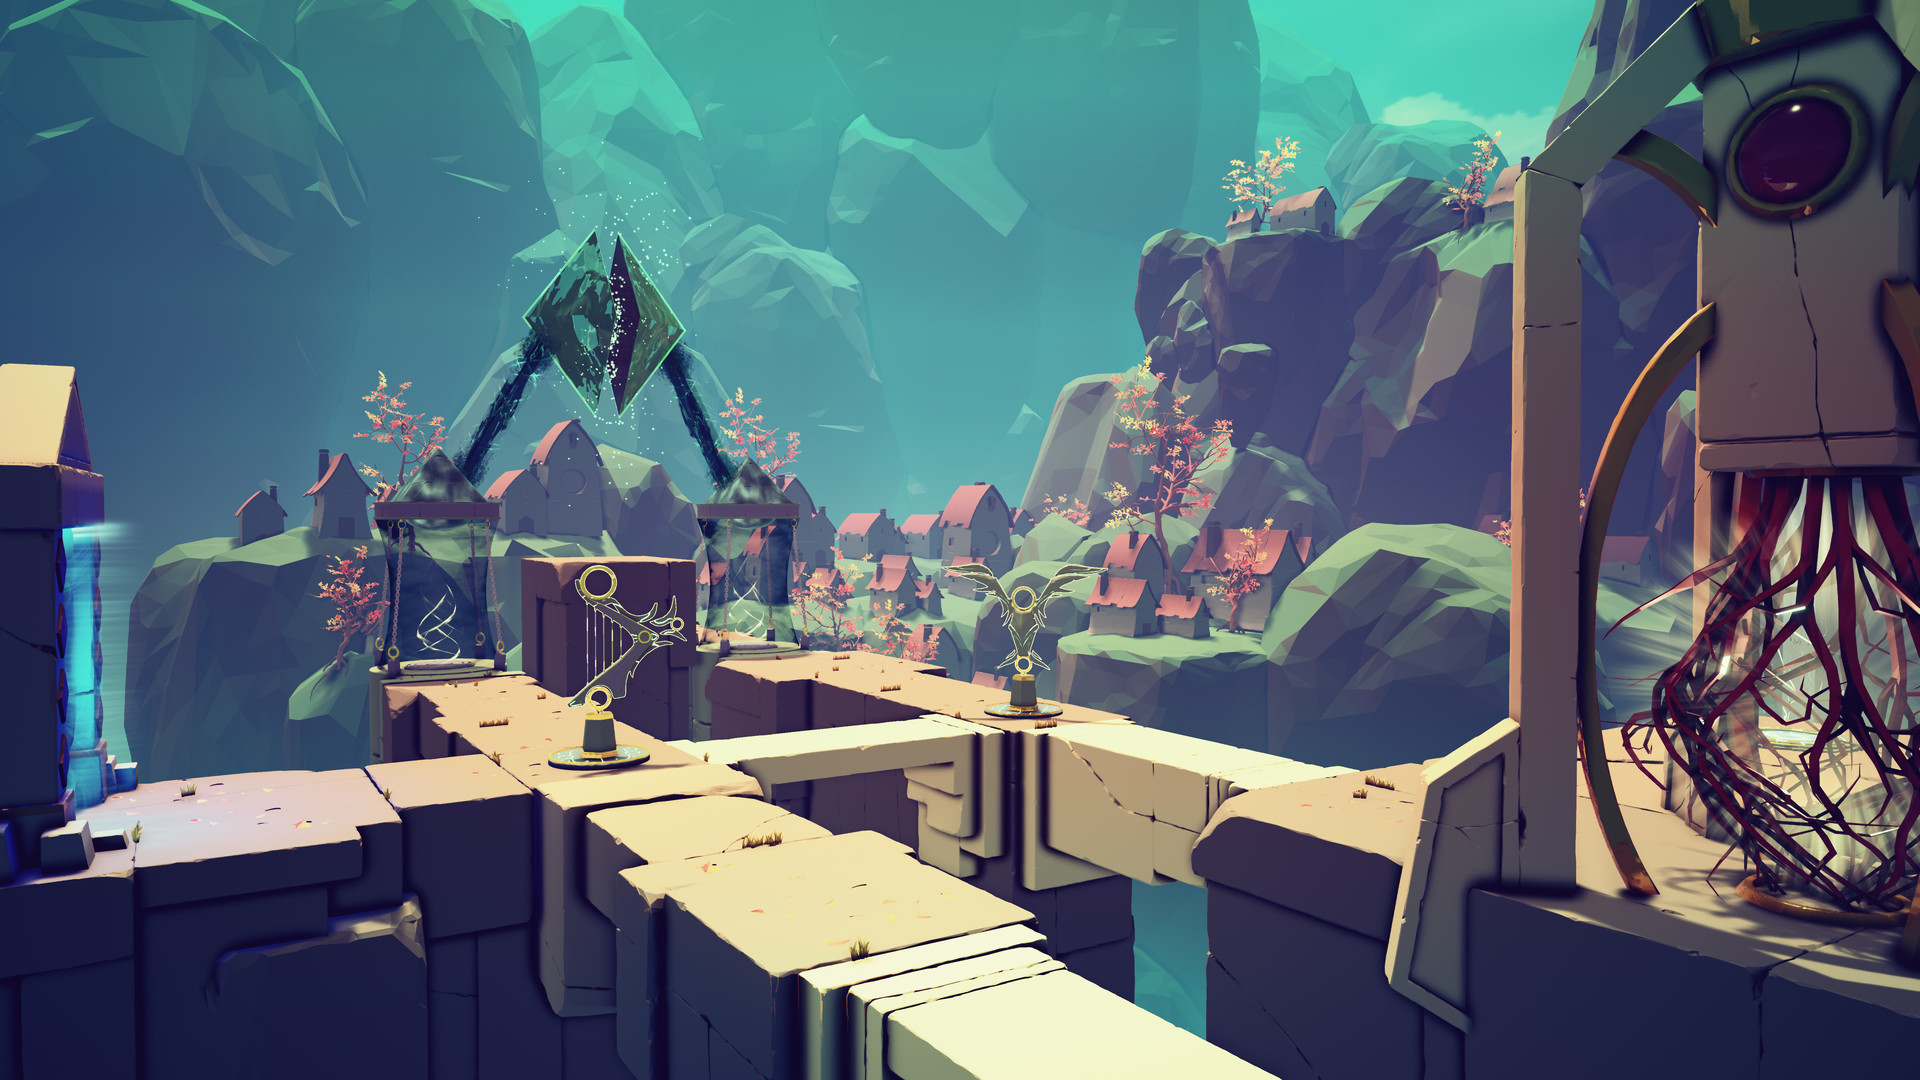 The Sojourn takes puzzle gaming to an ethereal realm